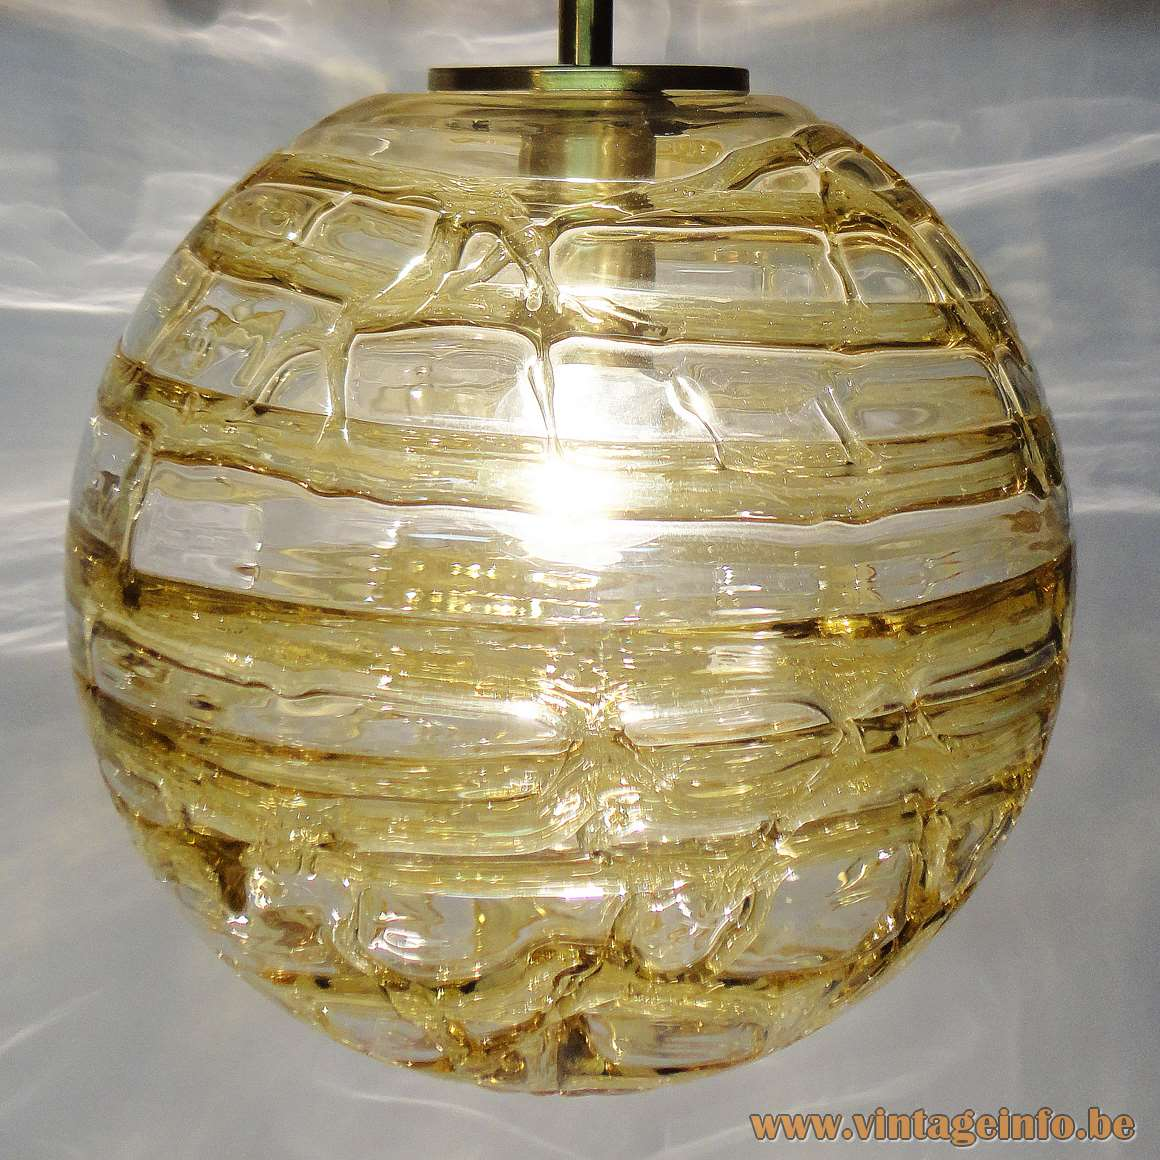 Doria clear and amber veined glass globe pendant lamp brass parts 1960s 1970s Germany MCM